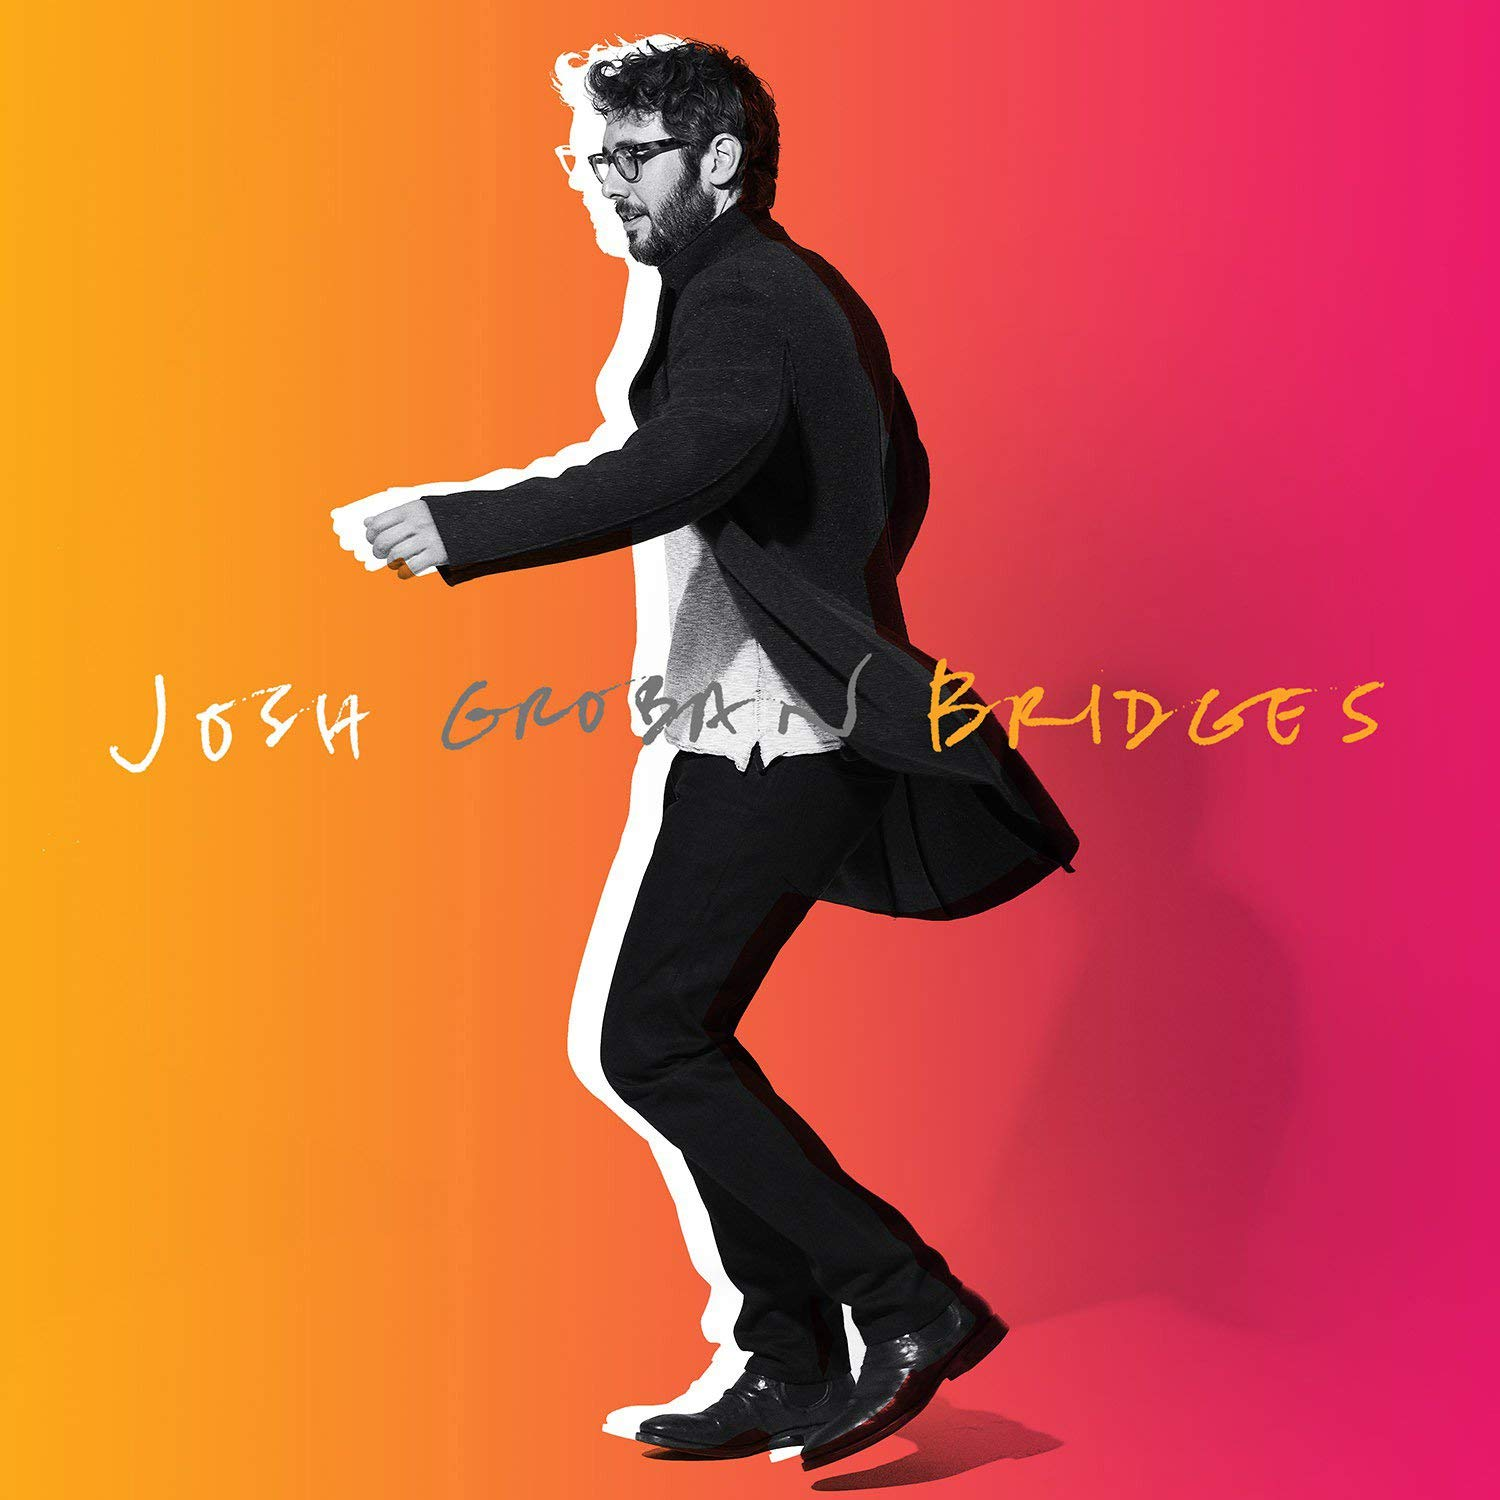 Josh Groban - Bridges [Limited Edition Deluxe]